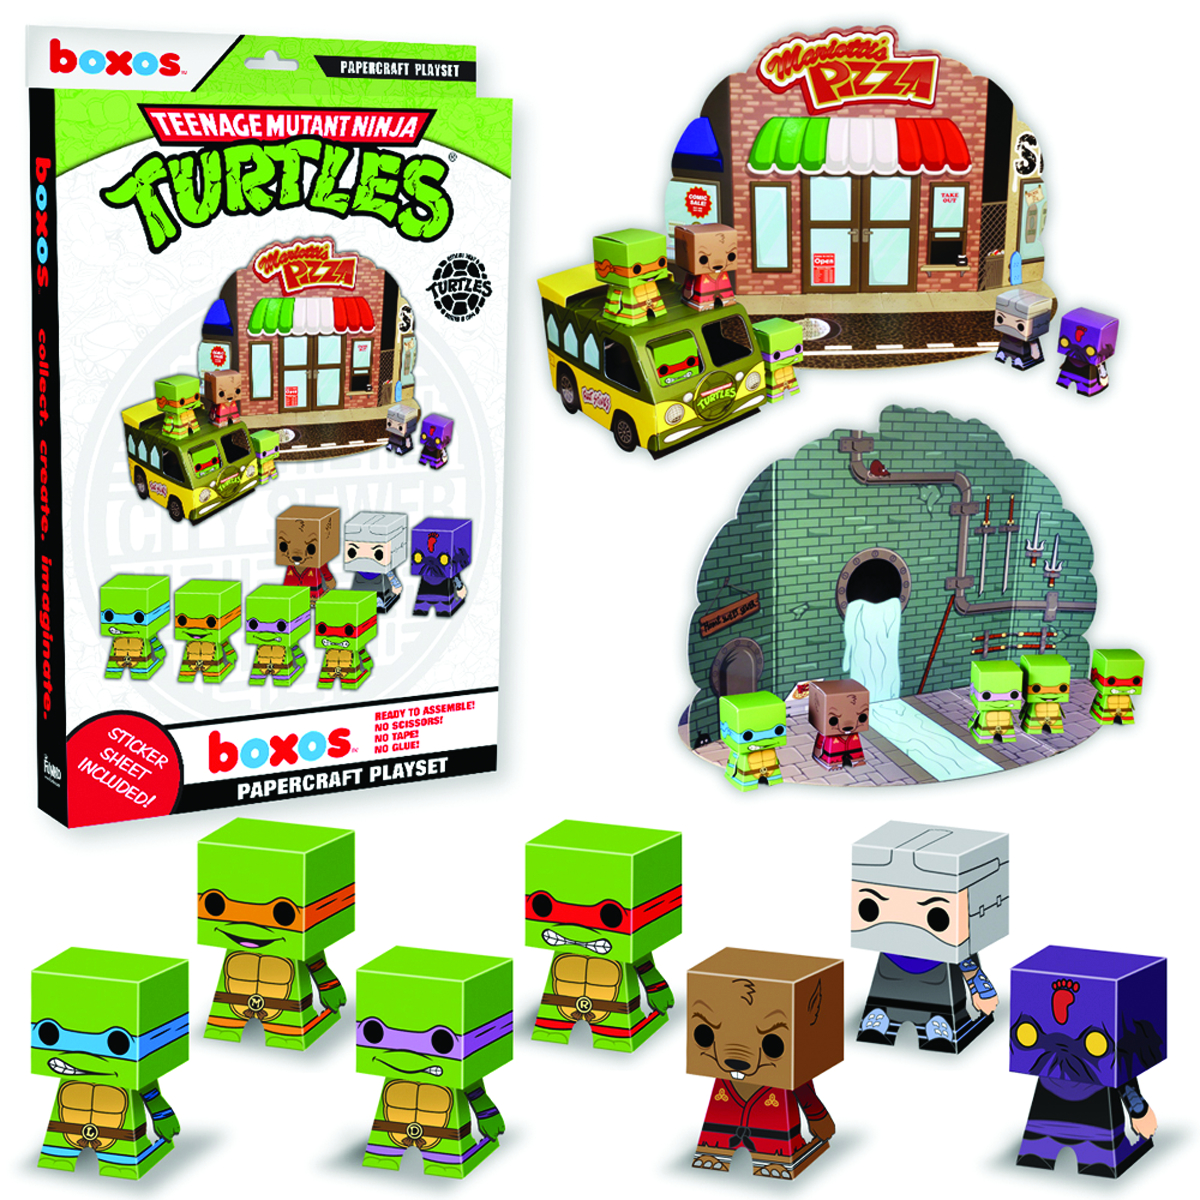 TMNT PAPERCRAFT ACTIVITY SET